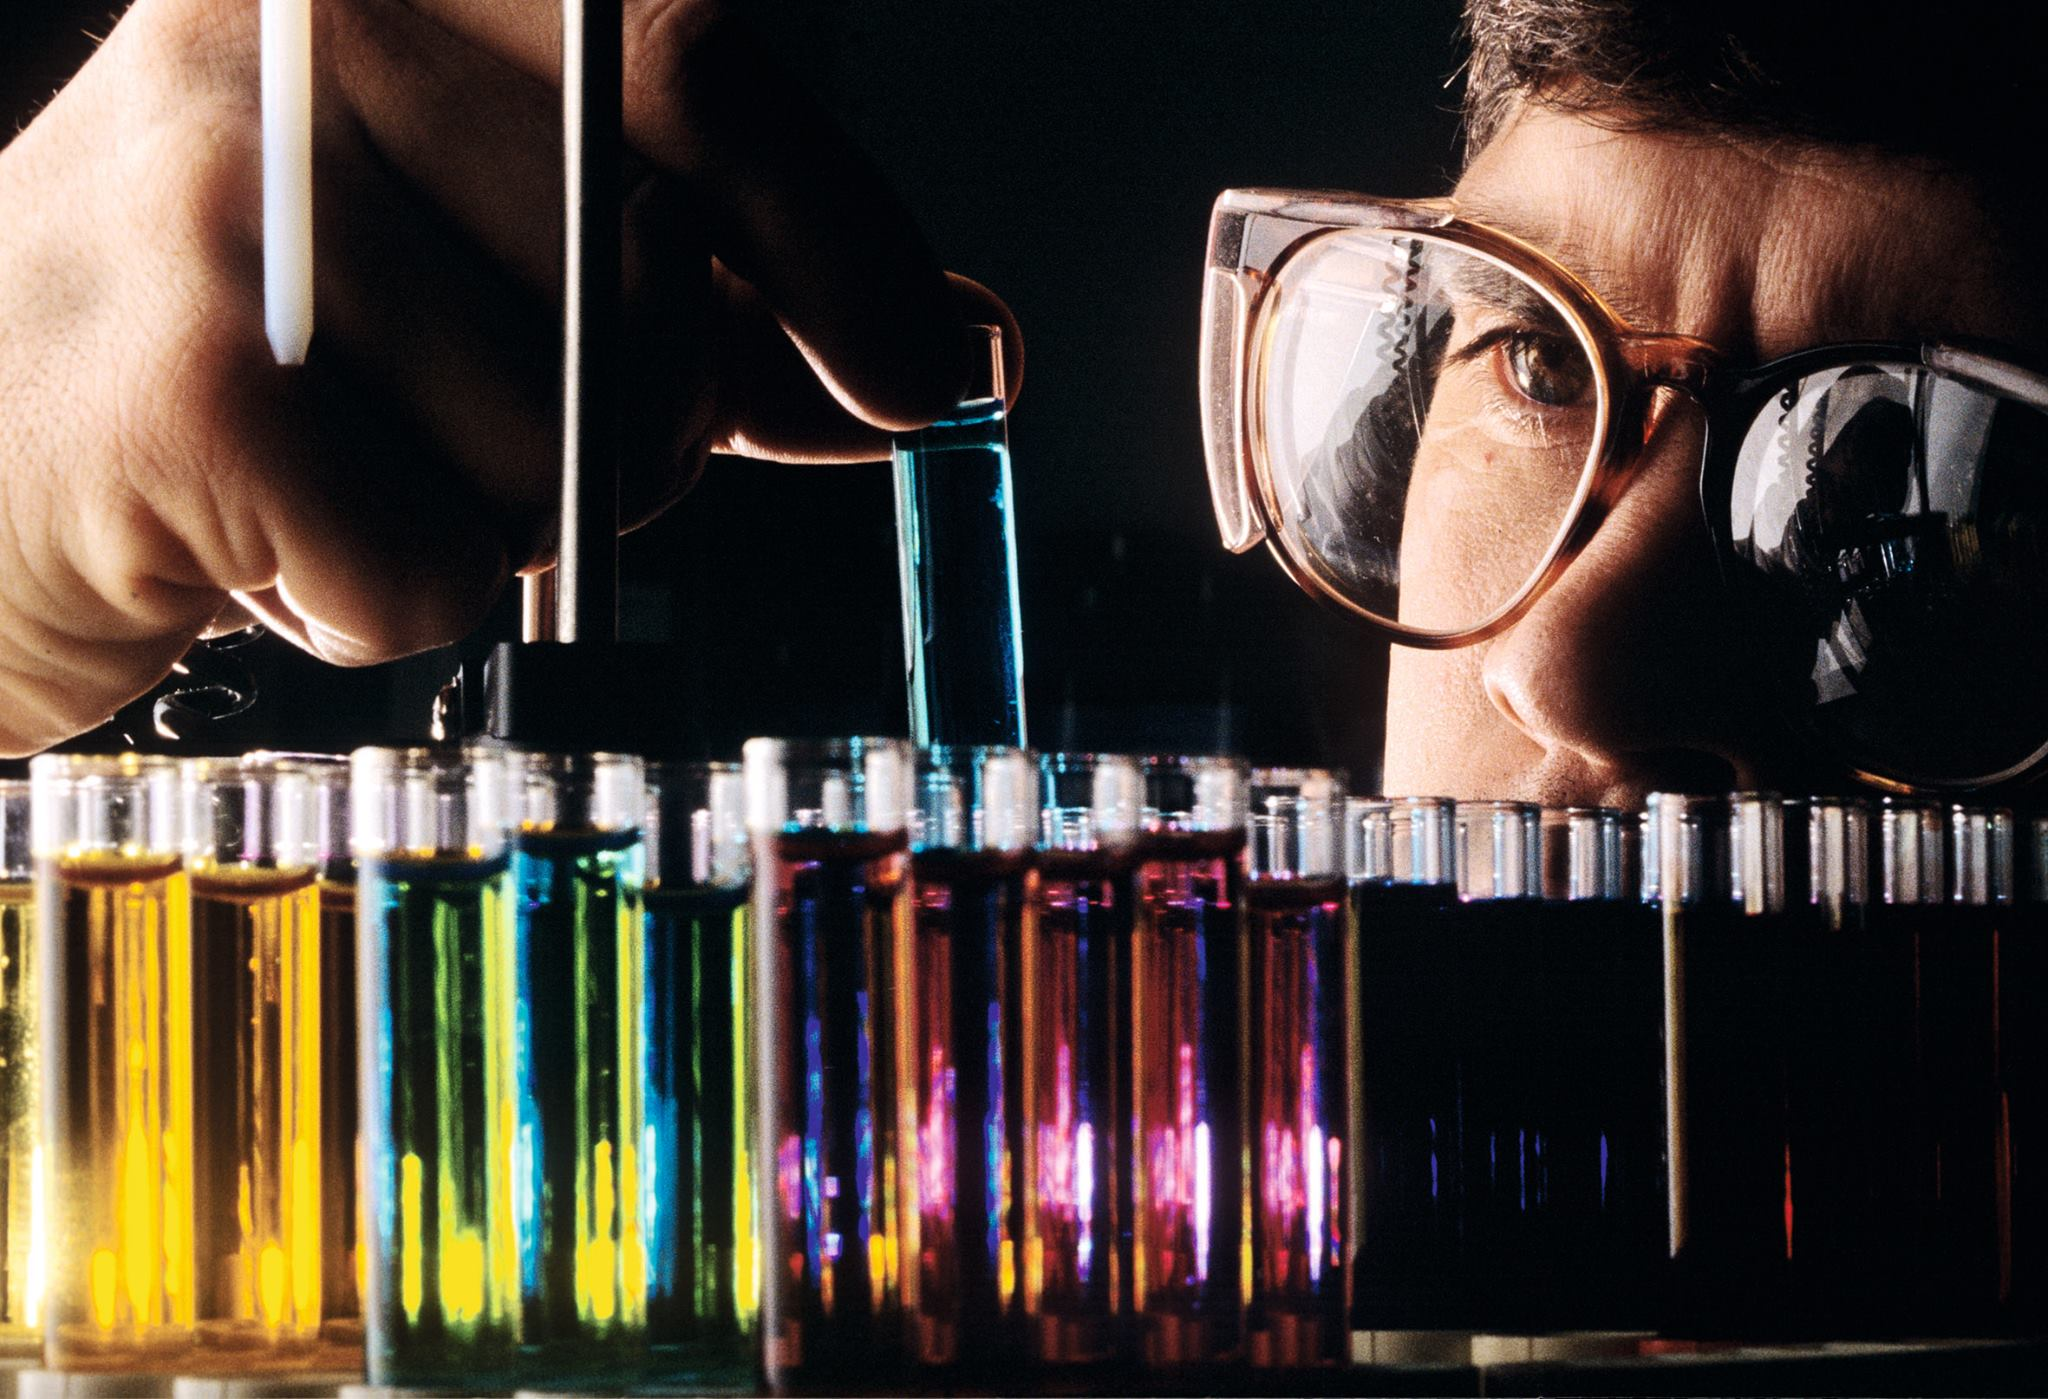 Scientist with color test tubes image